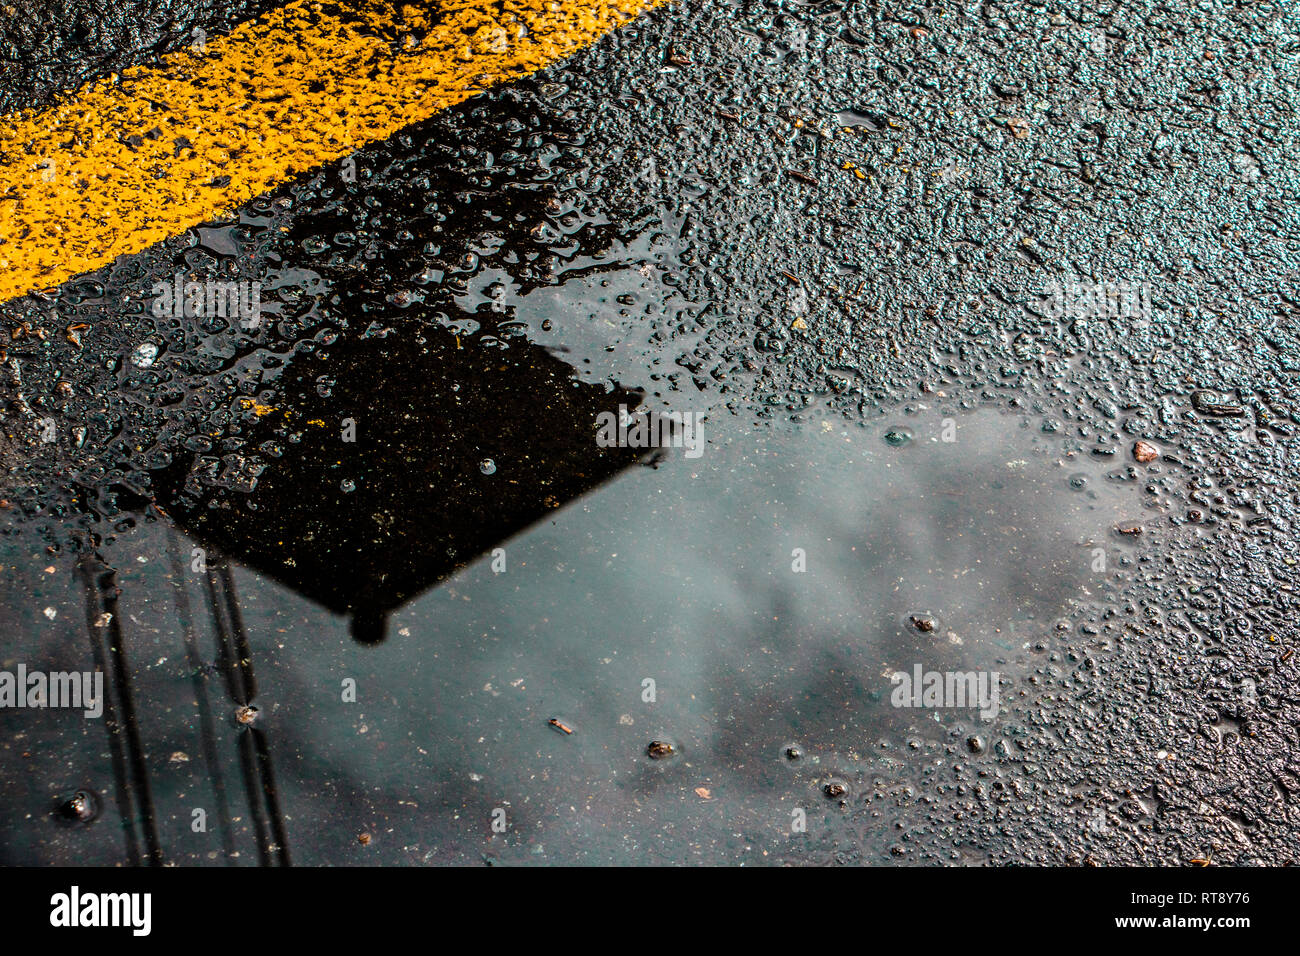 A wet road with a yellow line and reflection - Stock Image